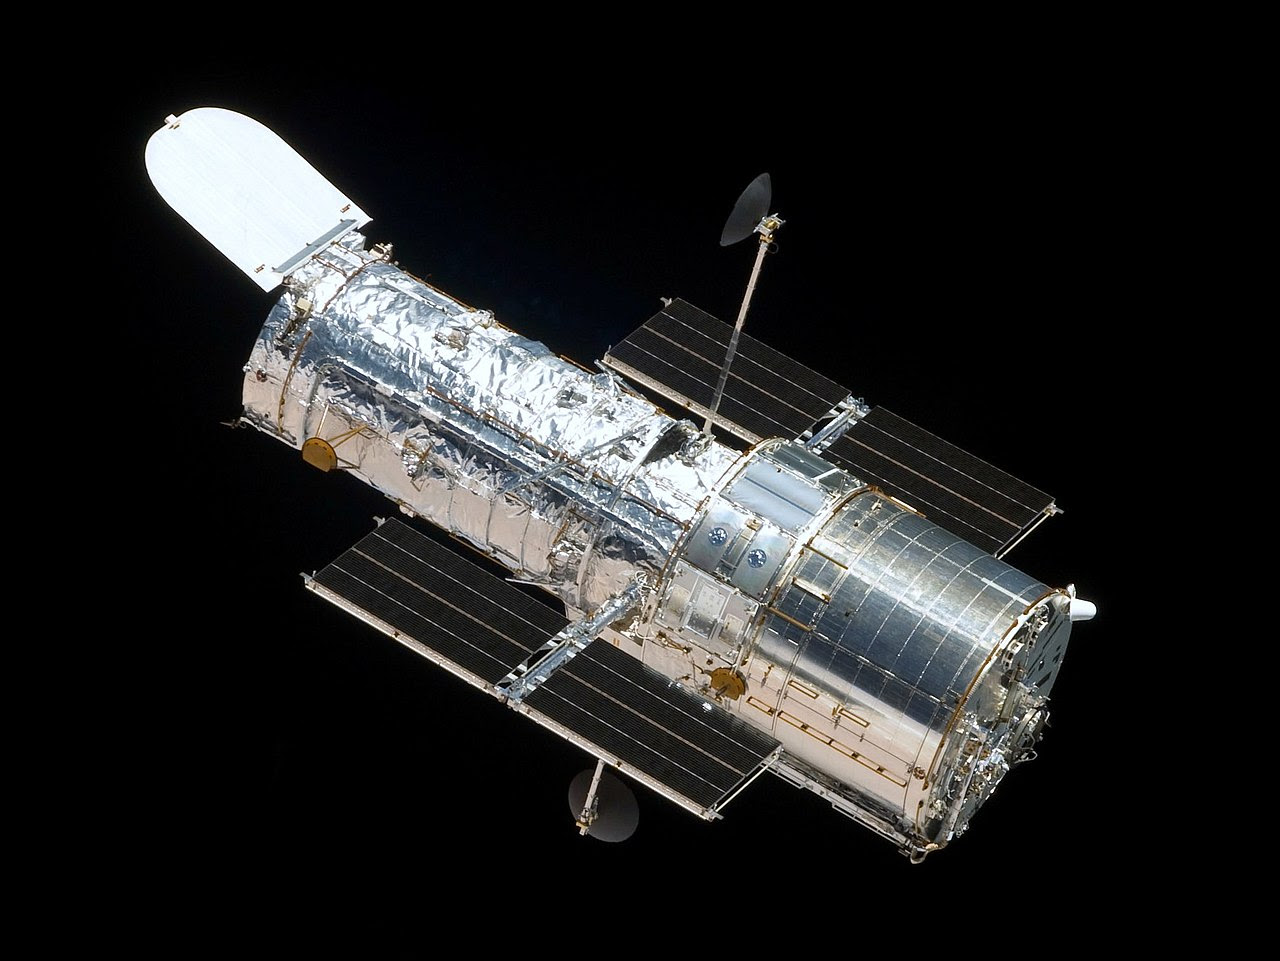 Aug24-1990-Hubble-1280px-HST-SM4